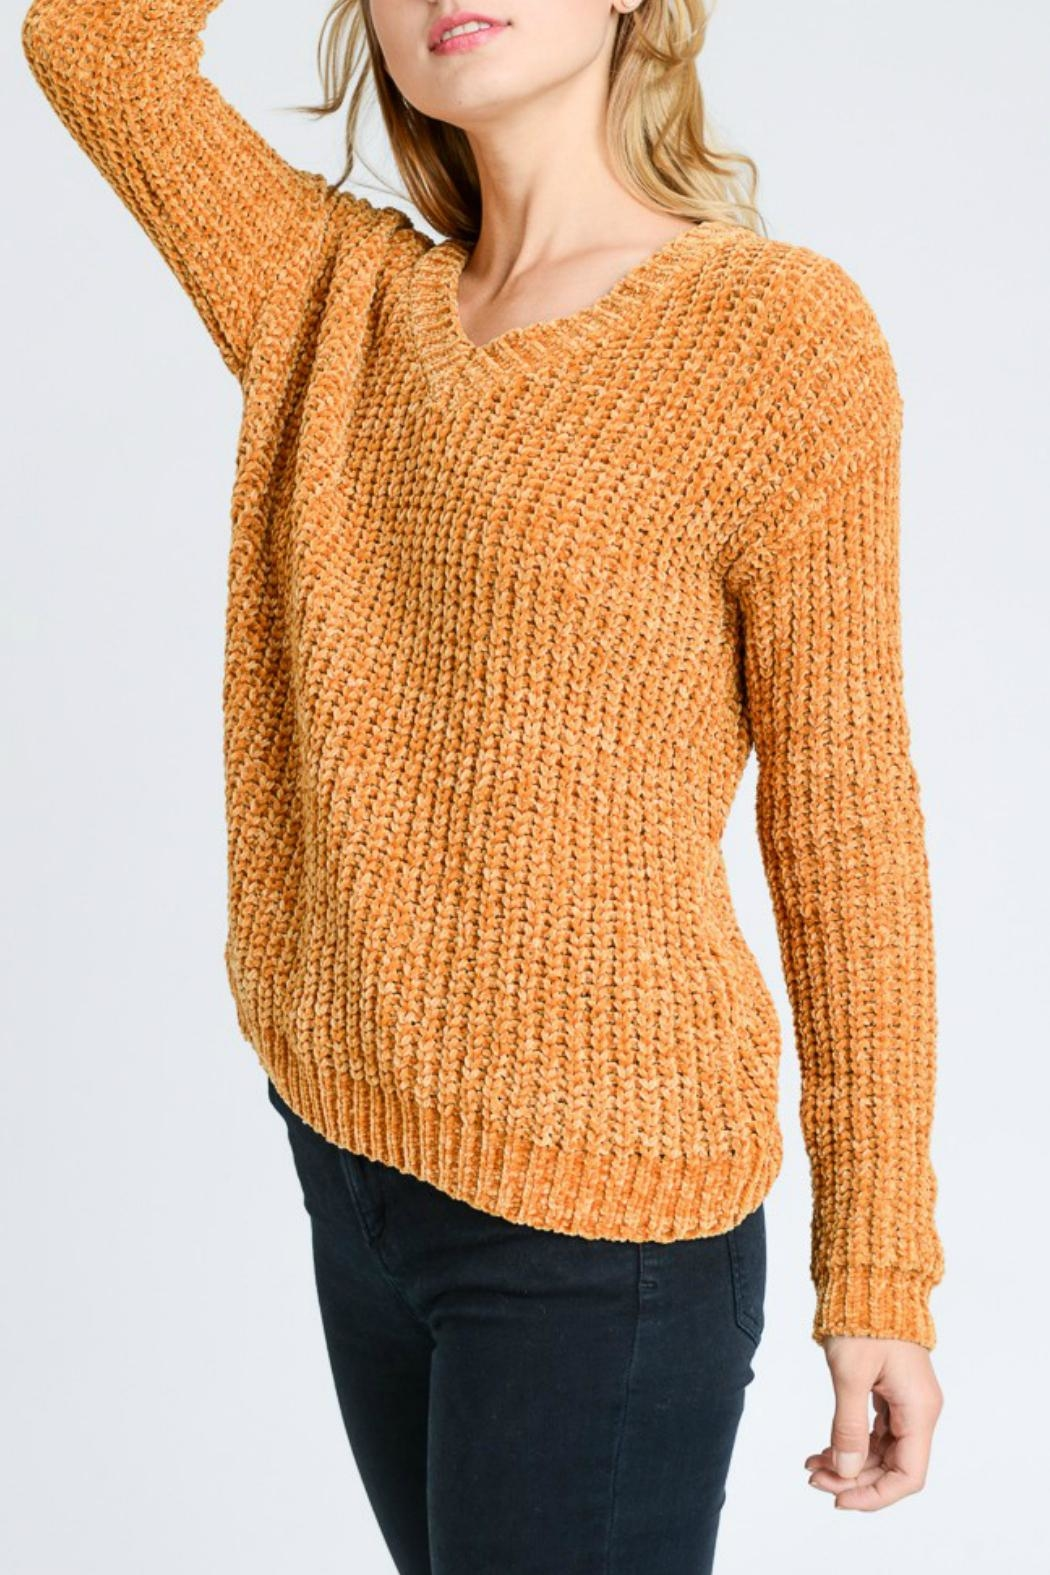 Lovetree Chenille V-Neck Sweater - Main Image